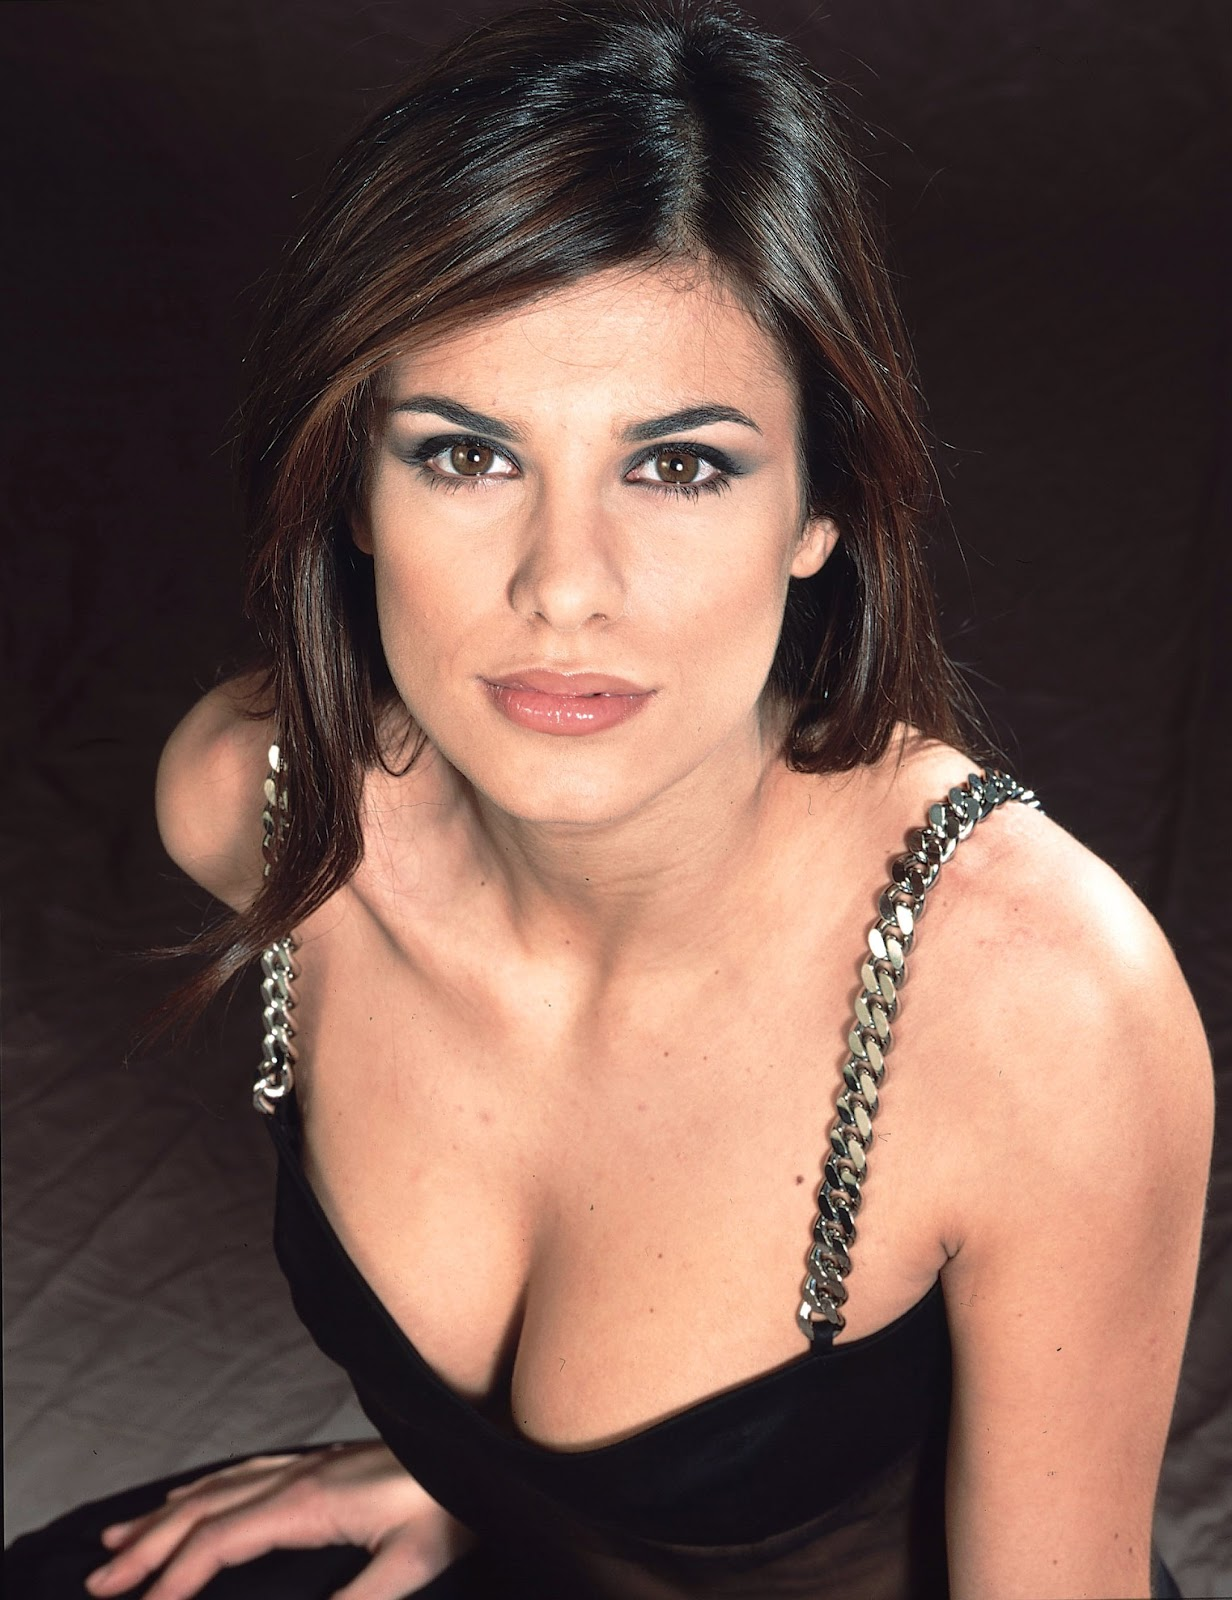 Cleavage Elisabetta Canalis nude photos 2019